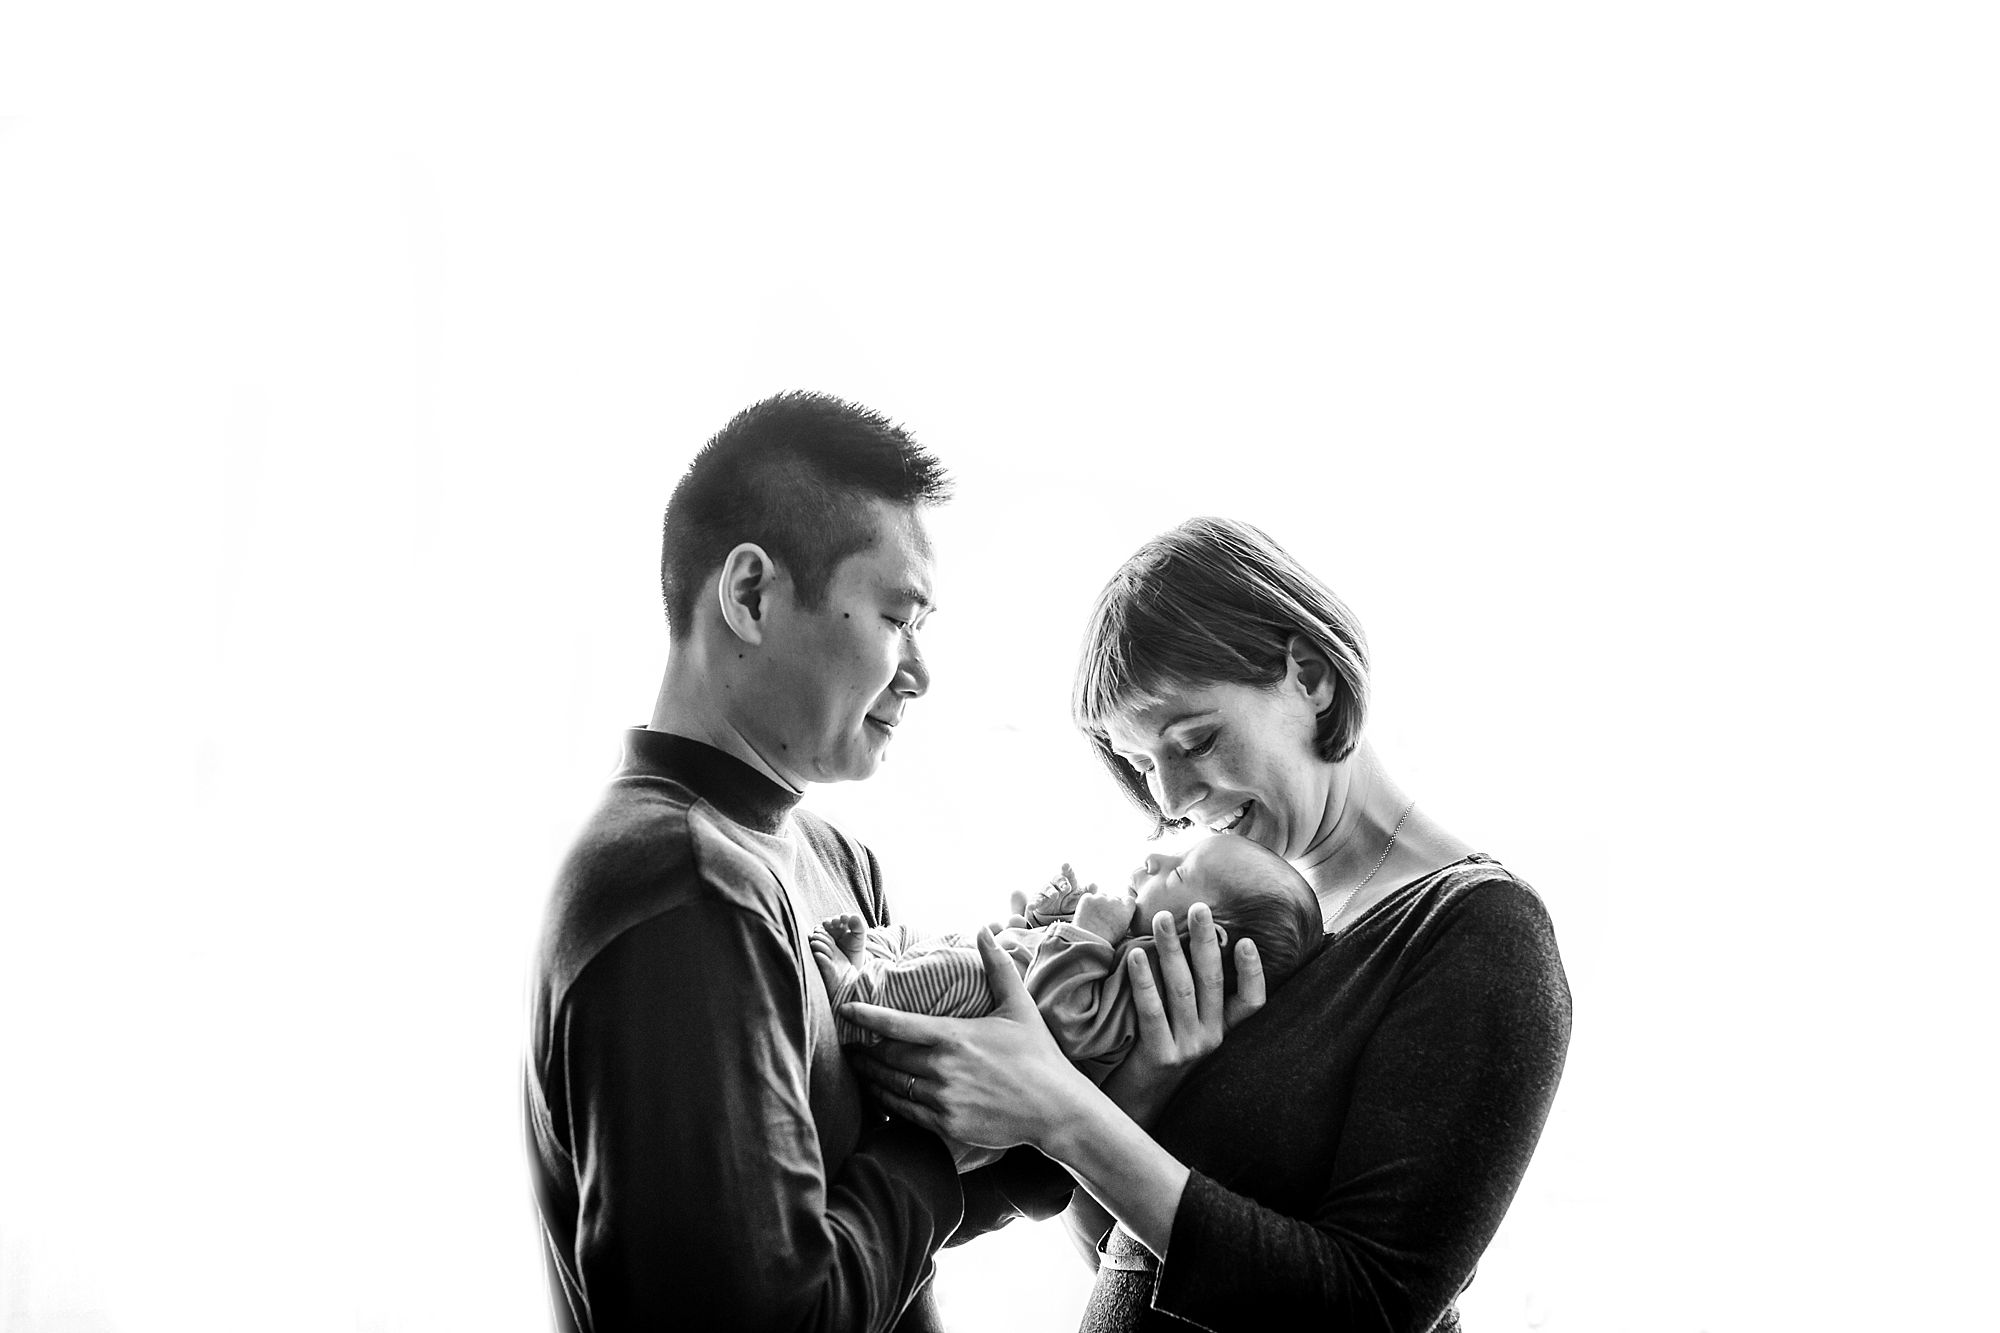 Taiwan_In_Home_Newborn_Photo_Session_Hunnicutt_Photography_0022